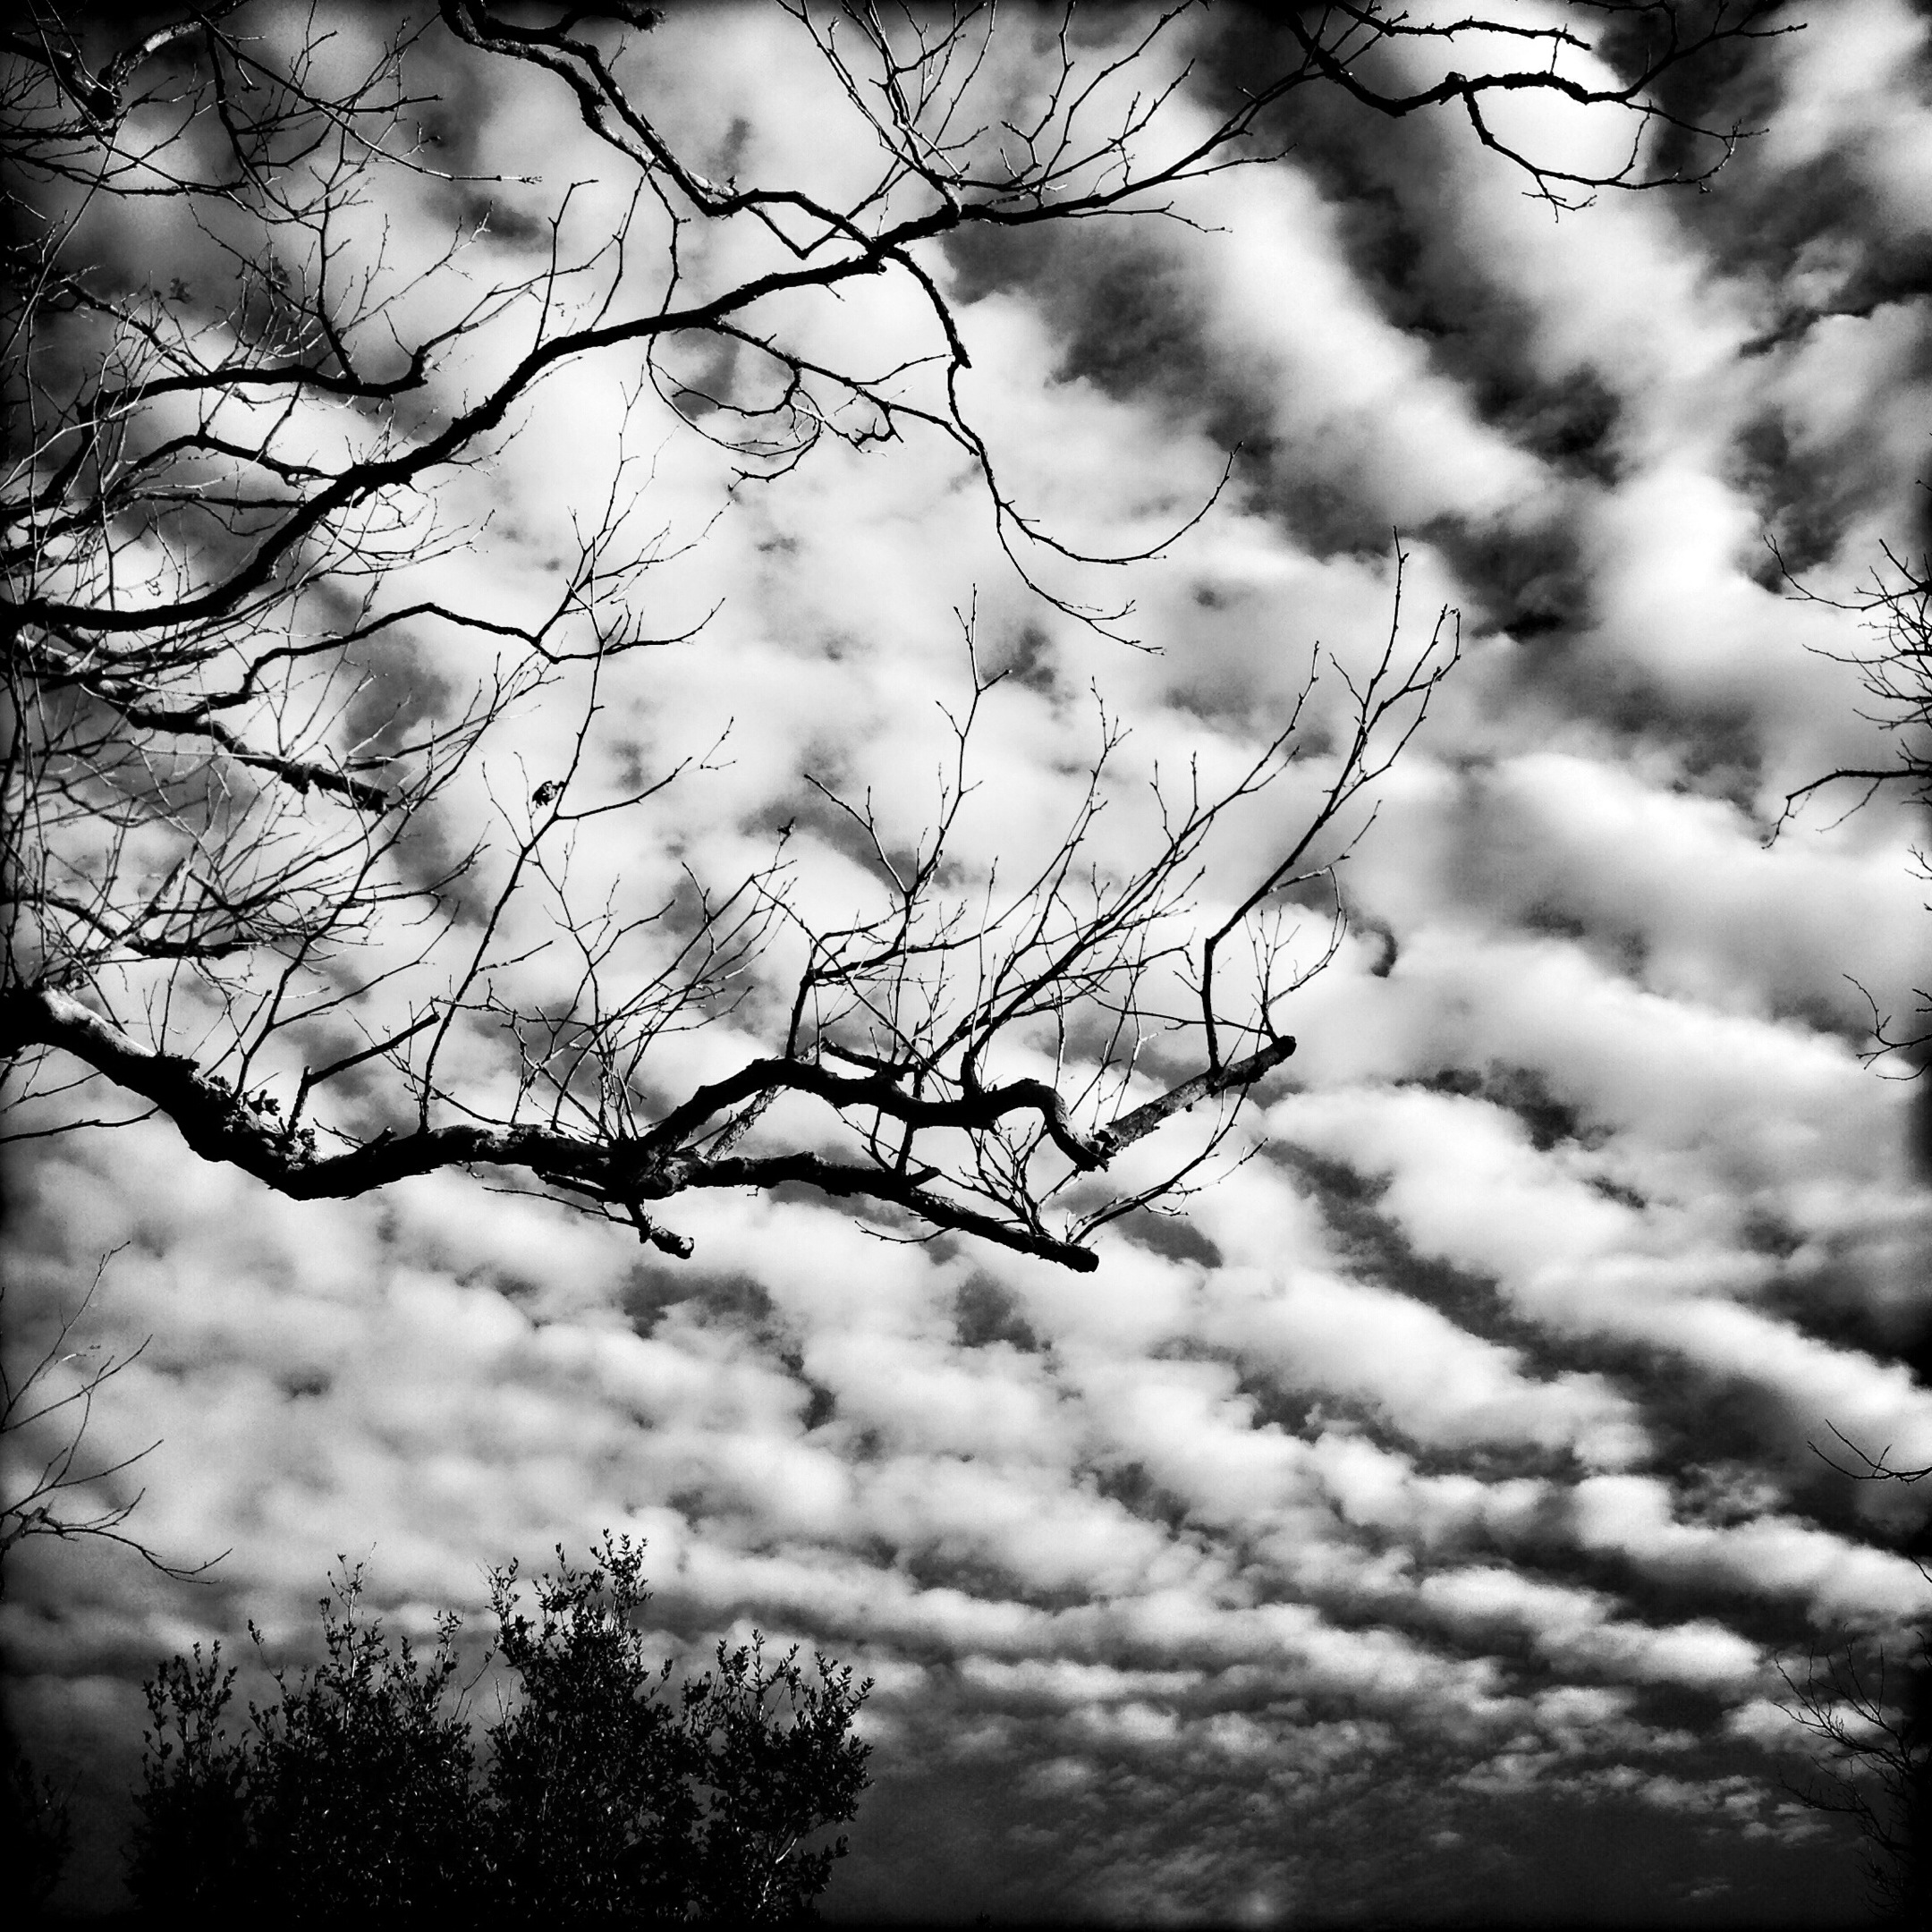 Sky and Branches, 2015